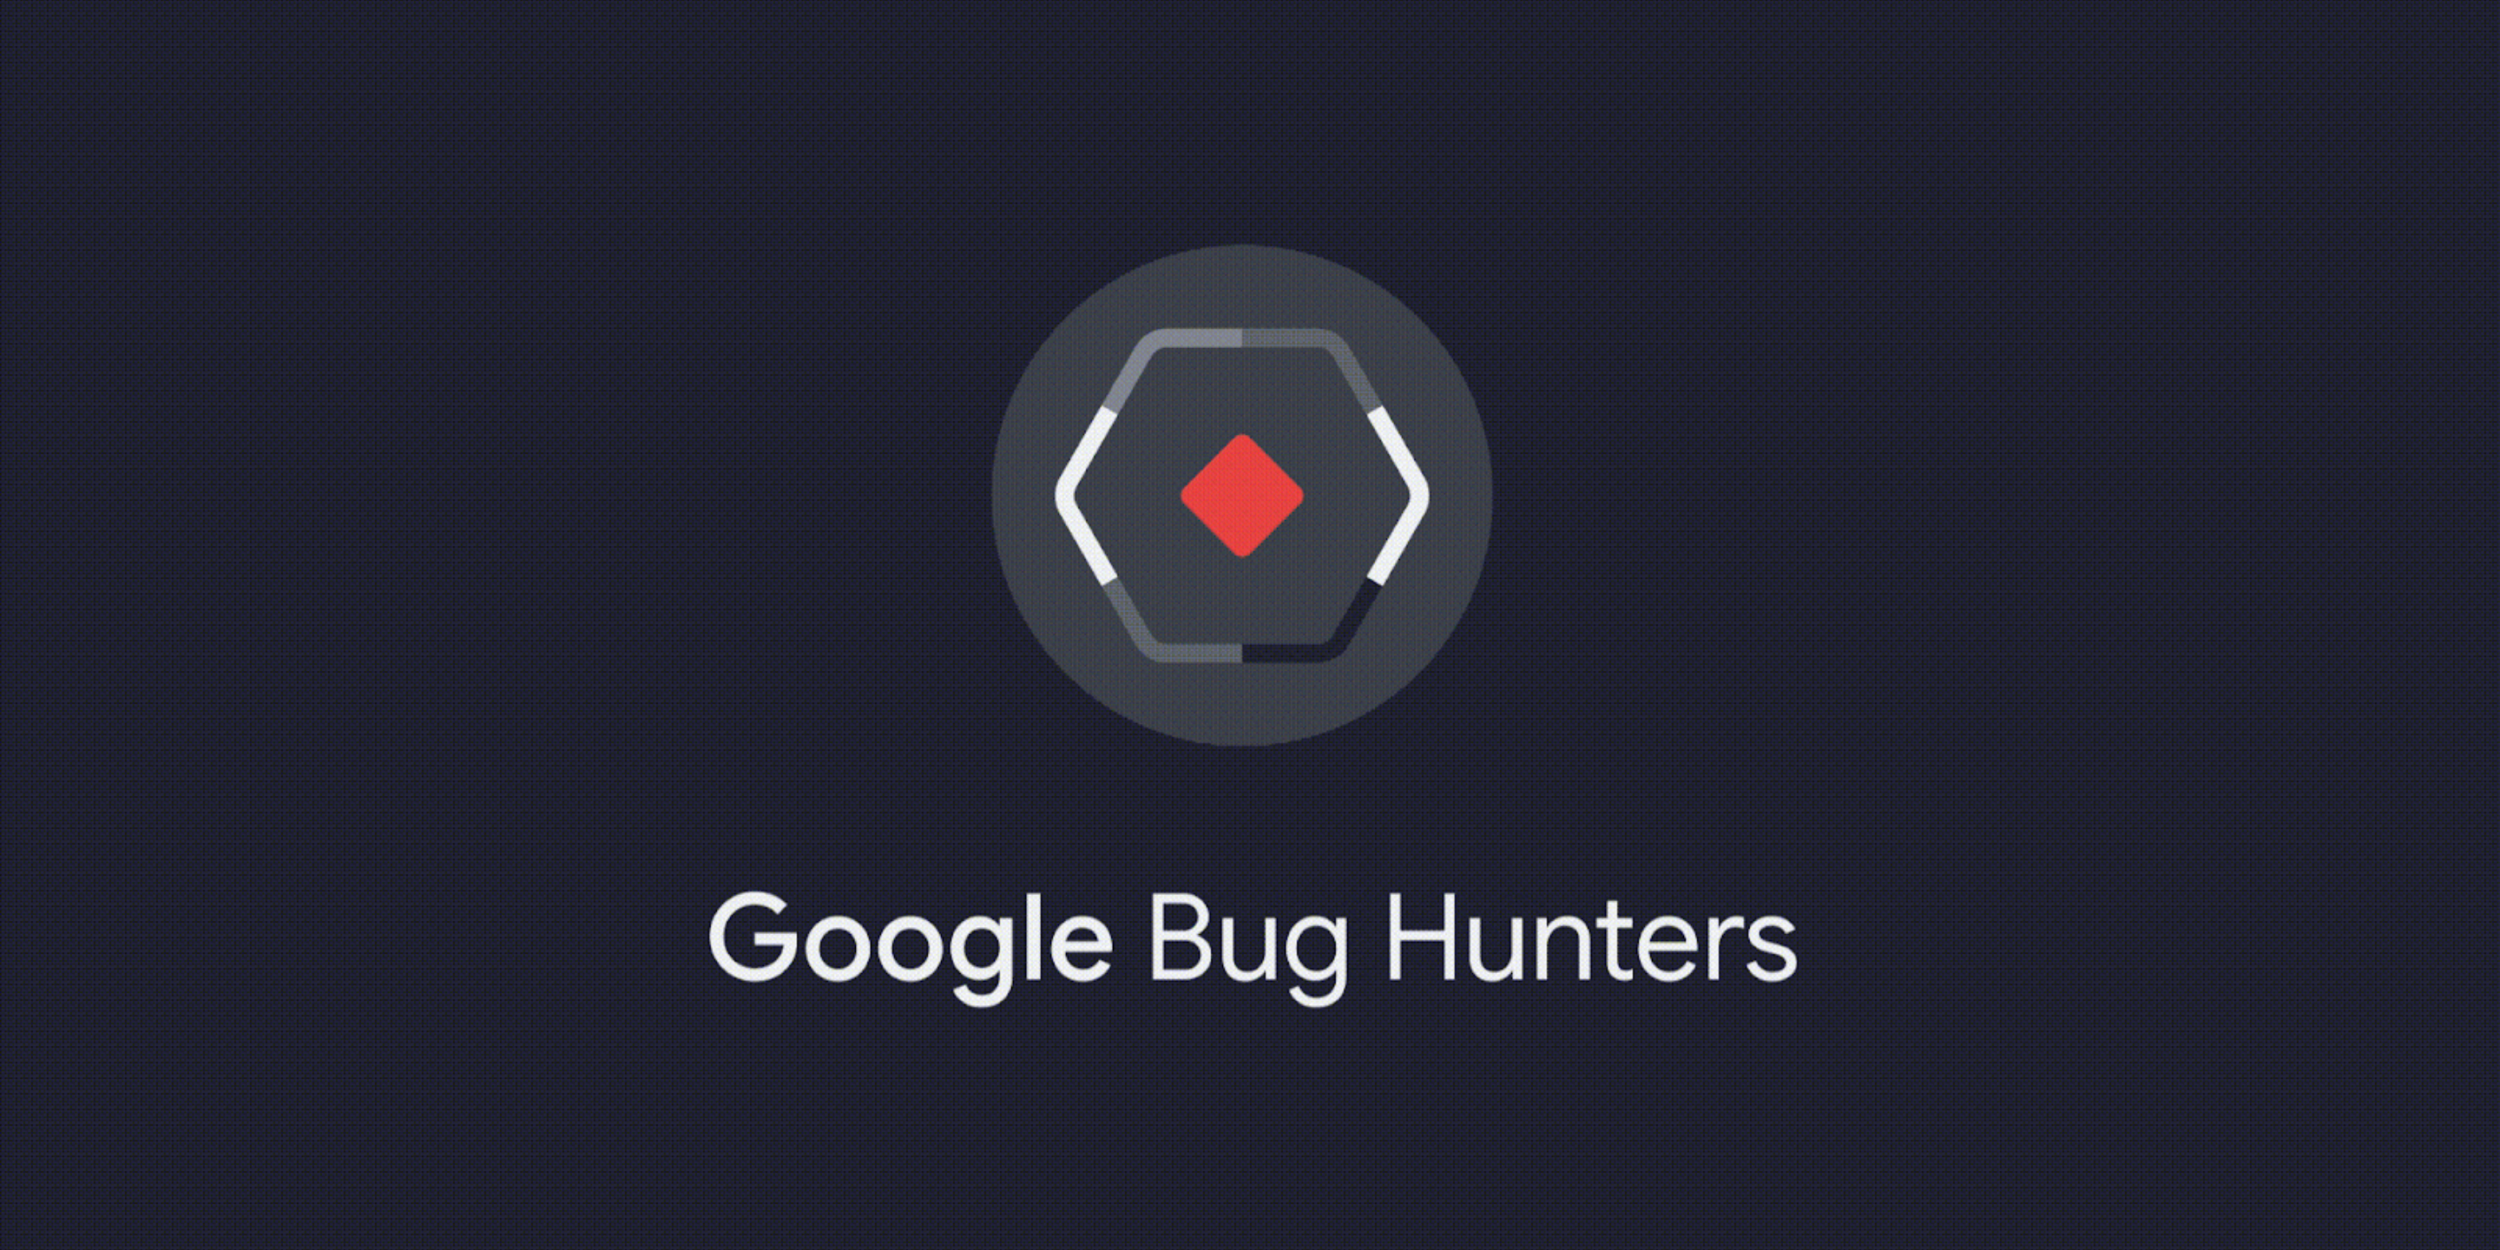 Google launched a new bug bounty platform, unified management of Android, Chrome, and other reward programs